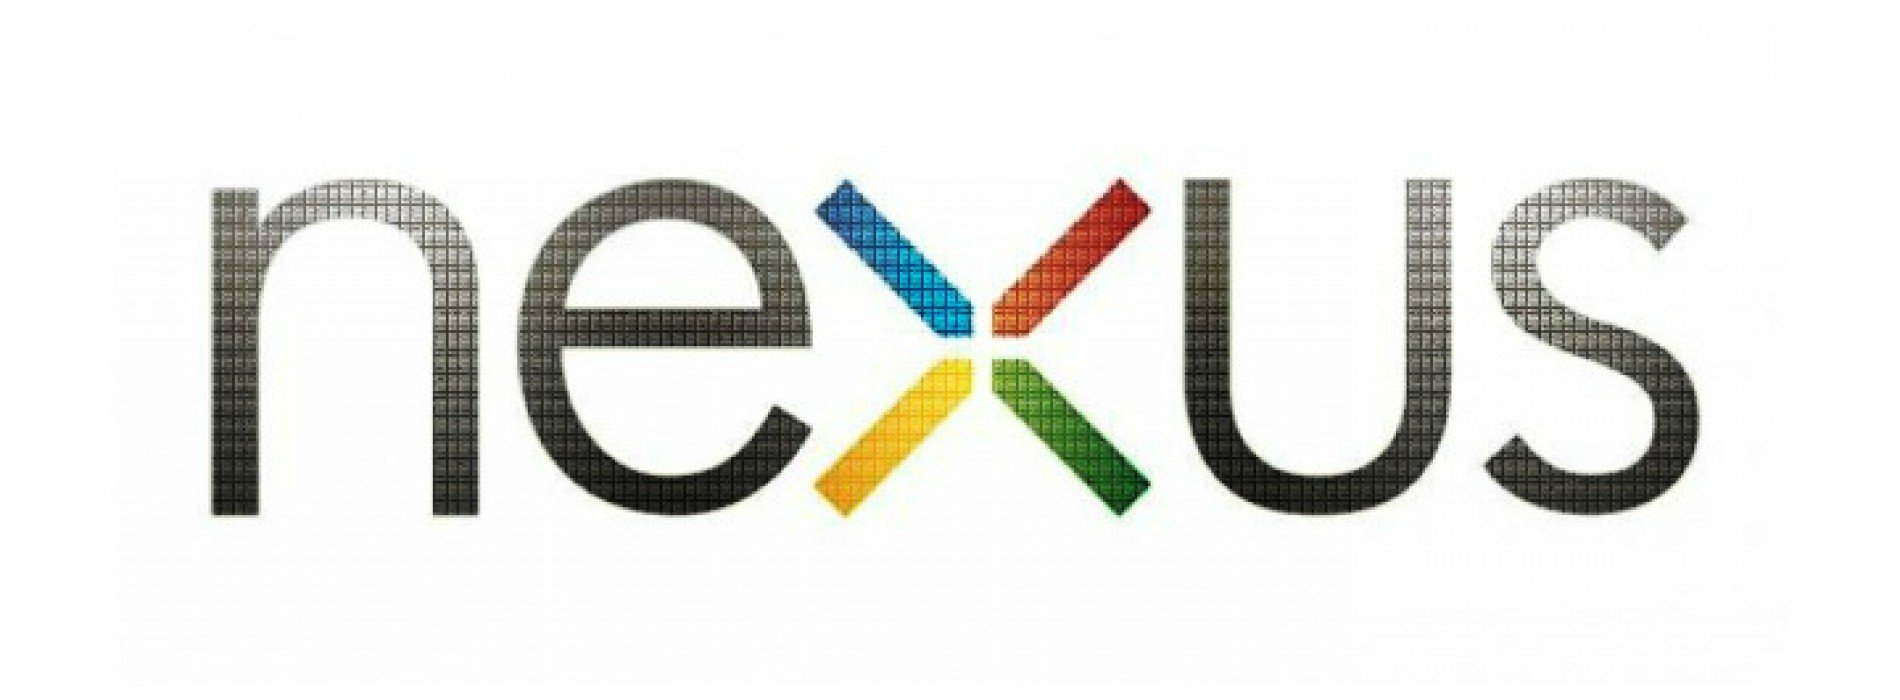 Nexus 5 pricing rumored to be half that of iPhone 5S